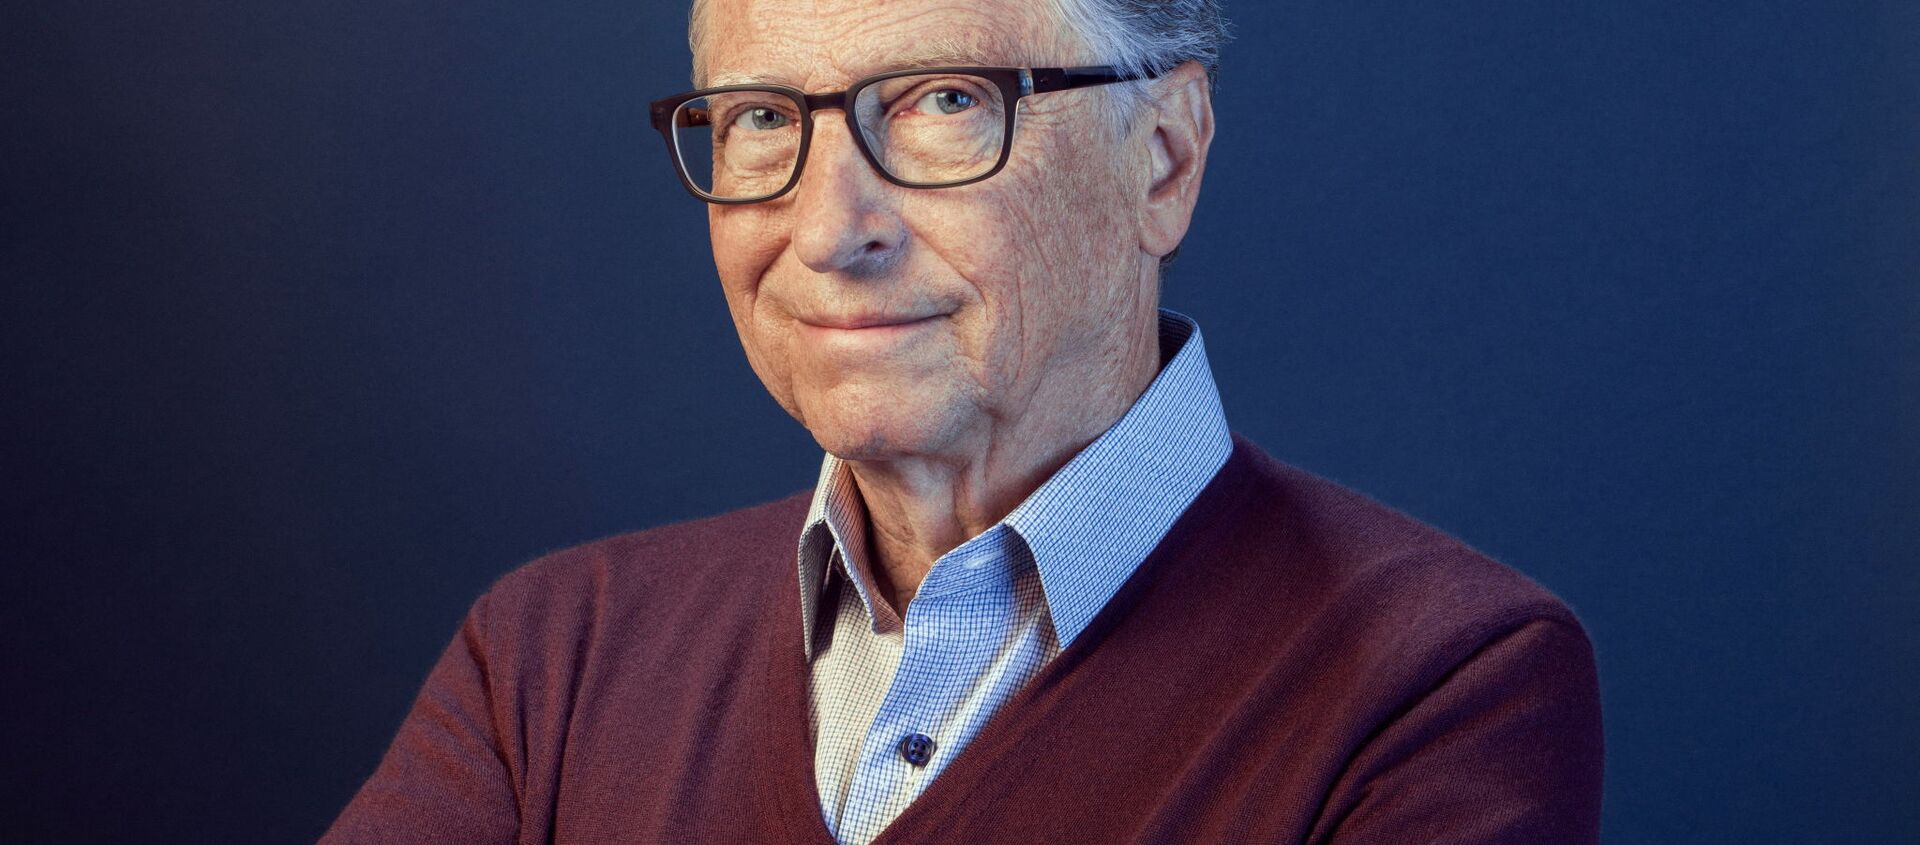 Bill Gates poses in this undated handout photo obtained by Reuters on February 15, 2021 - Sputnik International, 1920, 14.04.2021